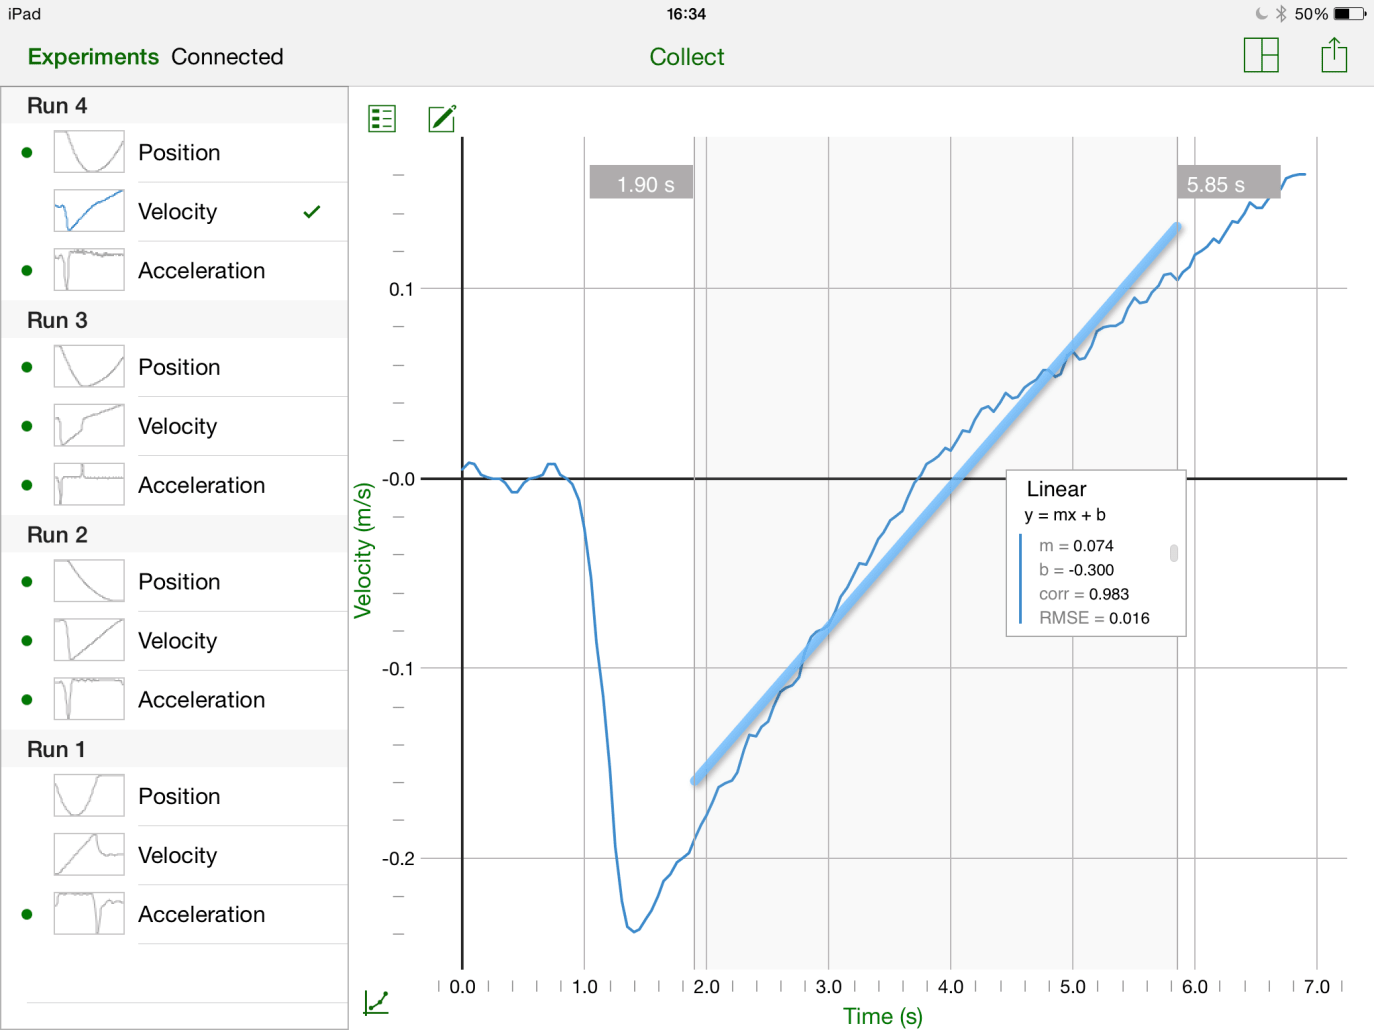 Fig 3. Cart rolling freely on a steep and shallow incline showing kinked graph. Collected with encoder system using ipad with Graphical Analysis app to display data.